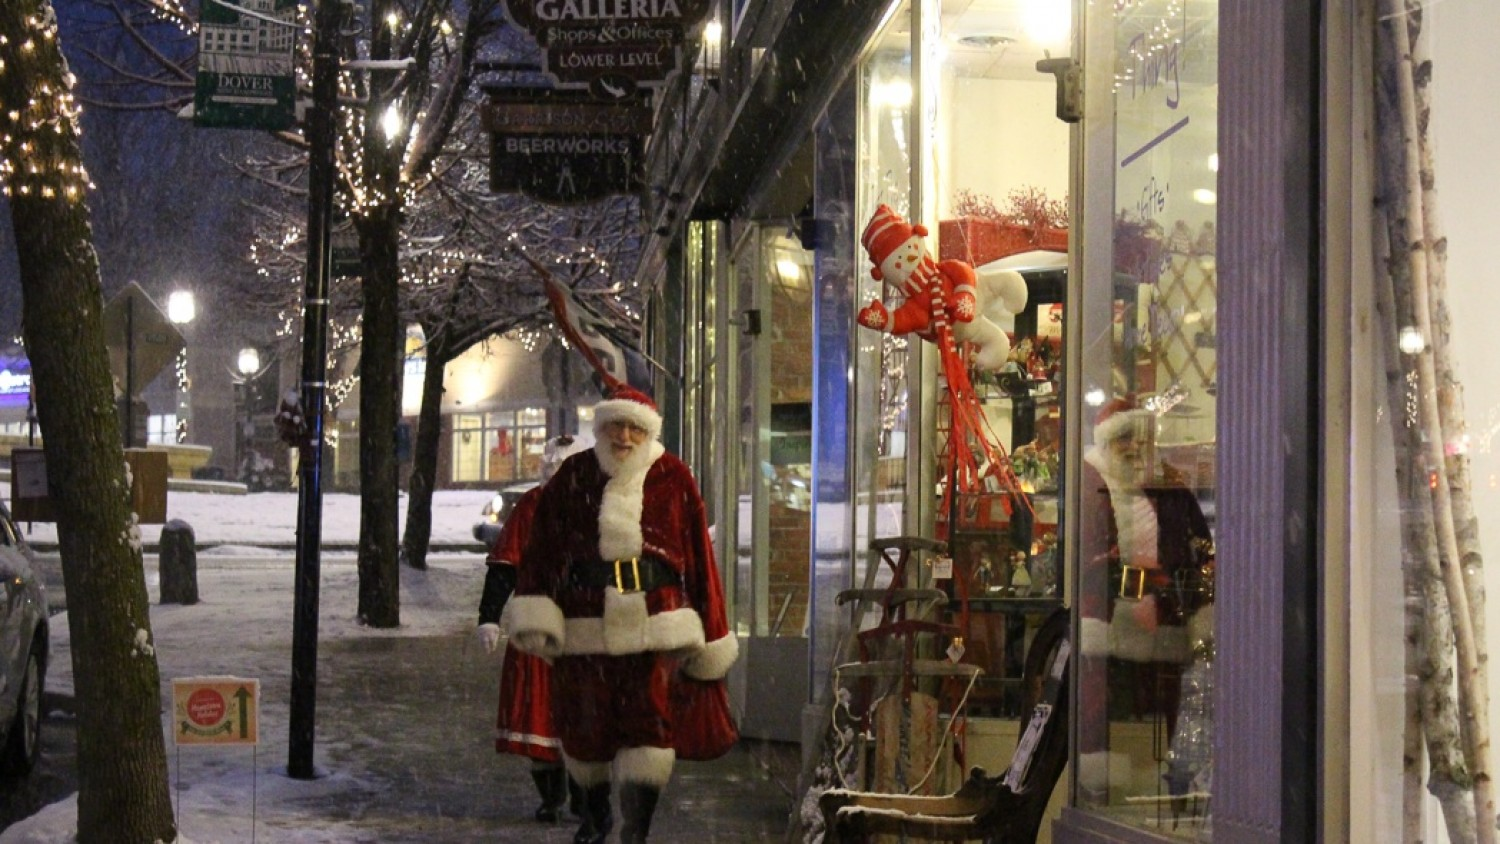 Christmas Events In Dover In December 2020 Dover Main Street